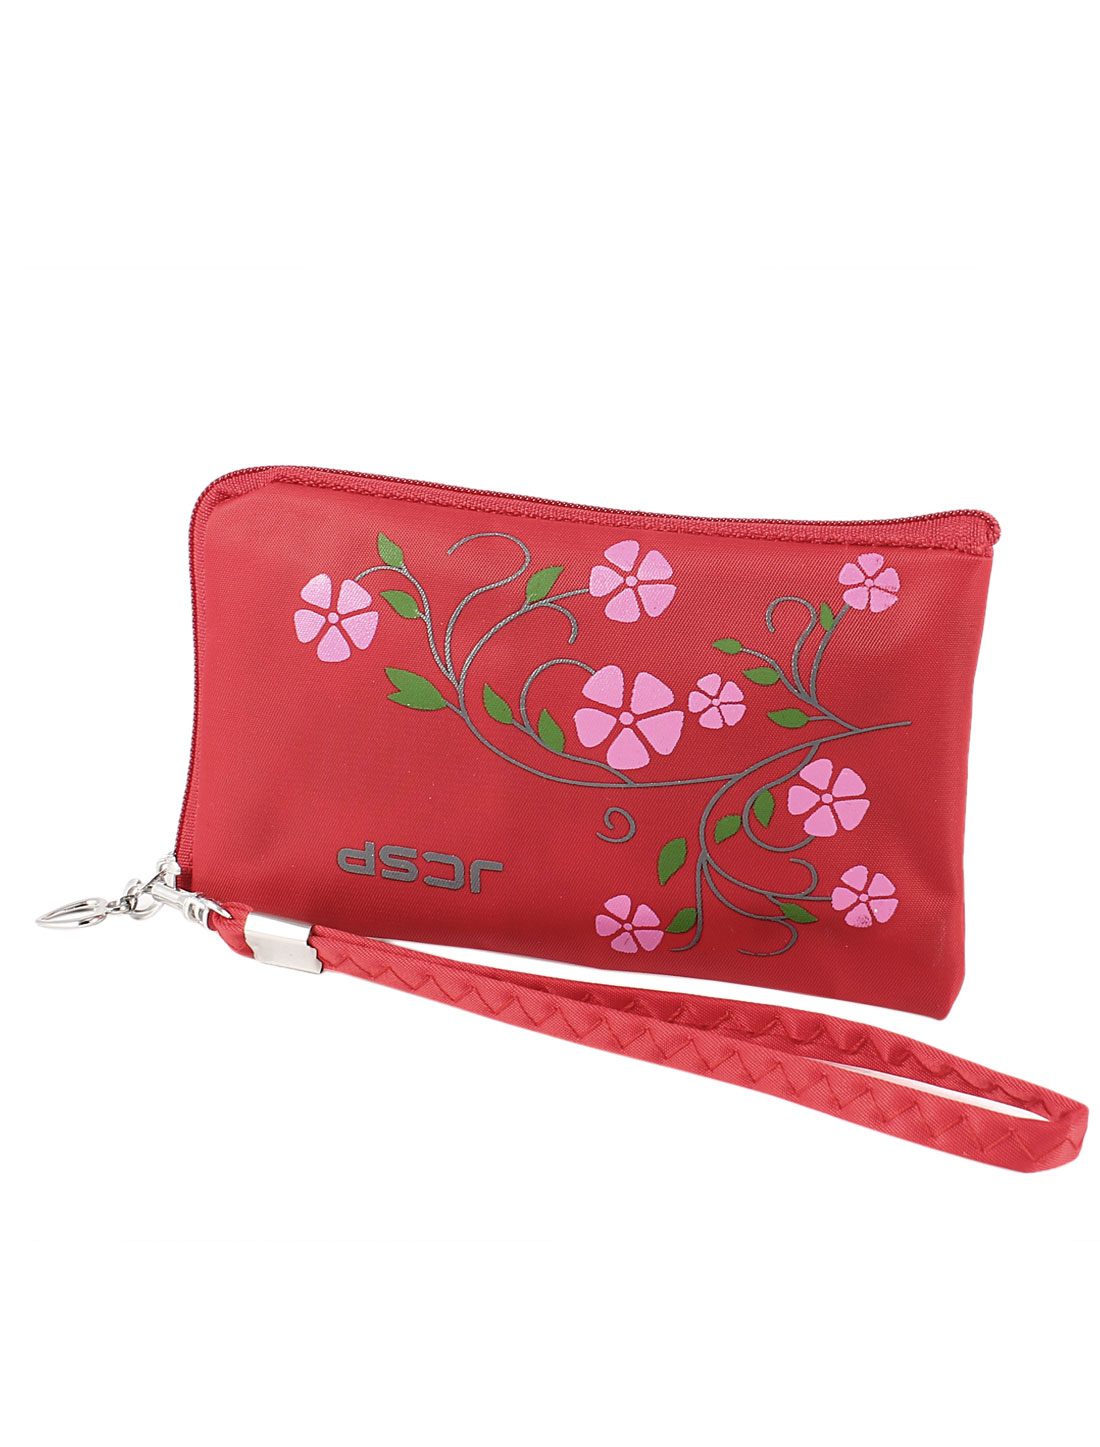 Floral Leaves Print L Shaped Zip Up Phone Purse Pouch Holder w Strap Red